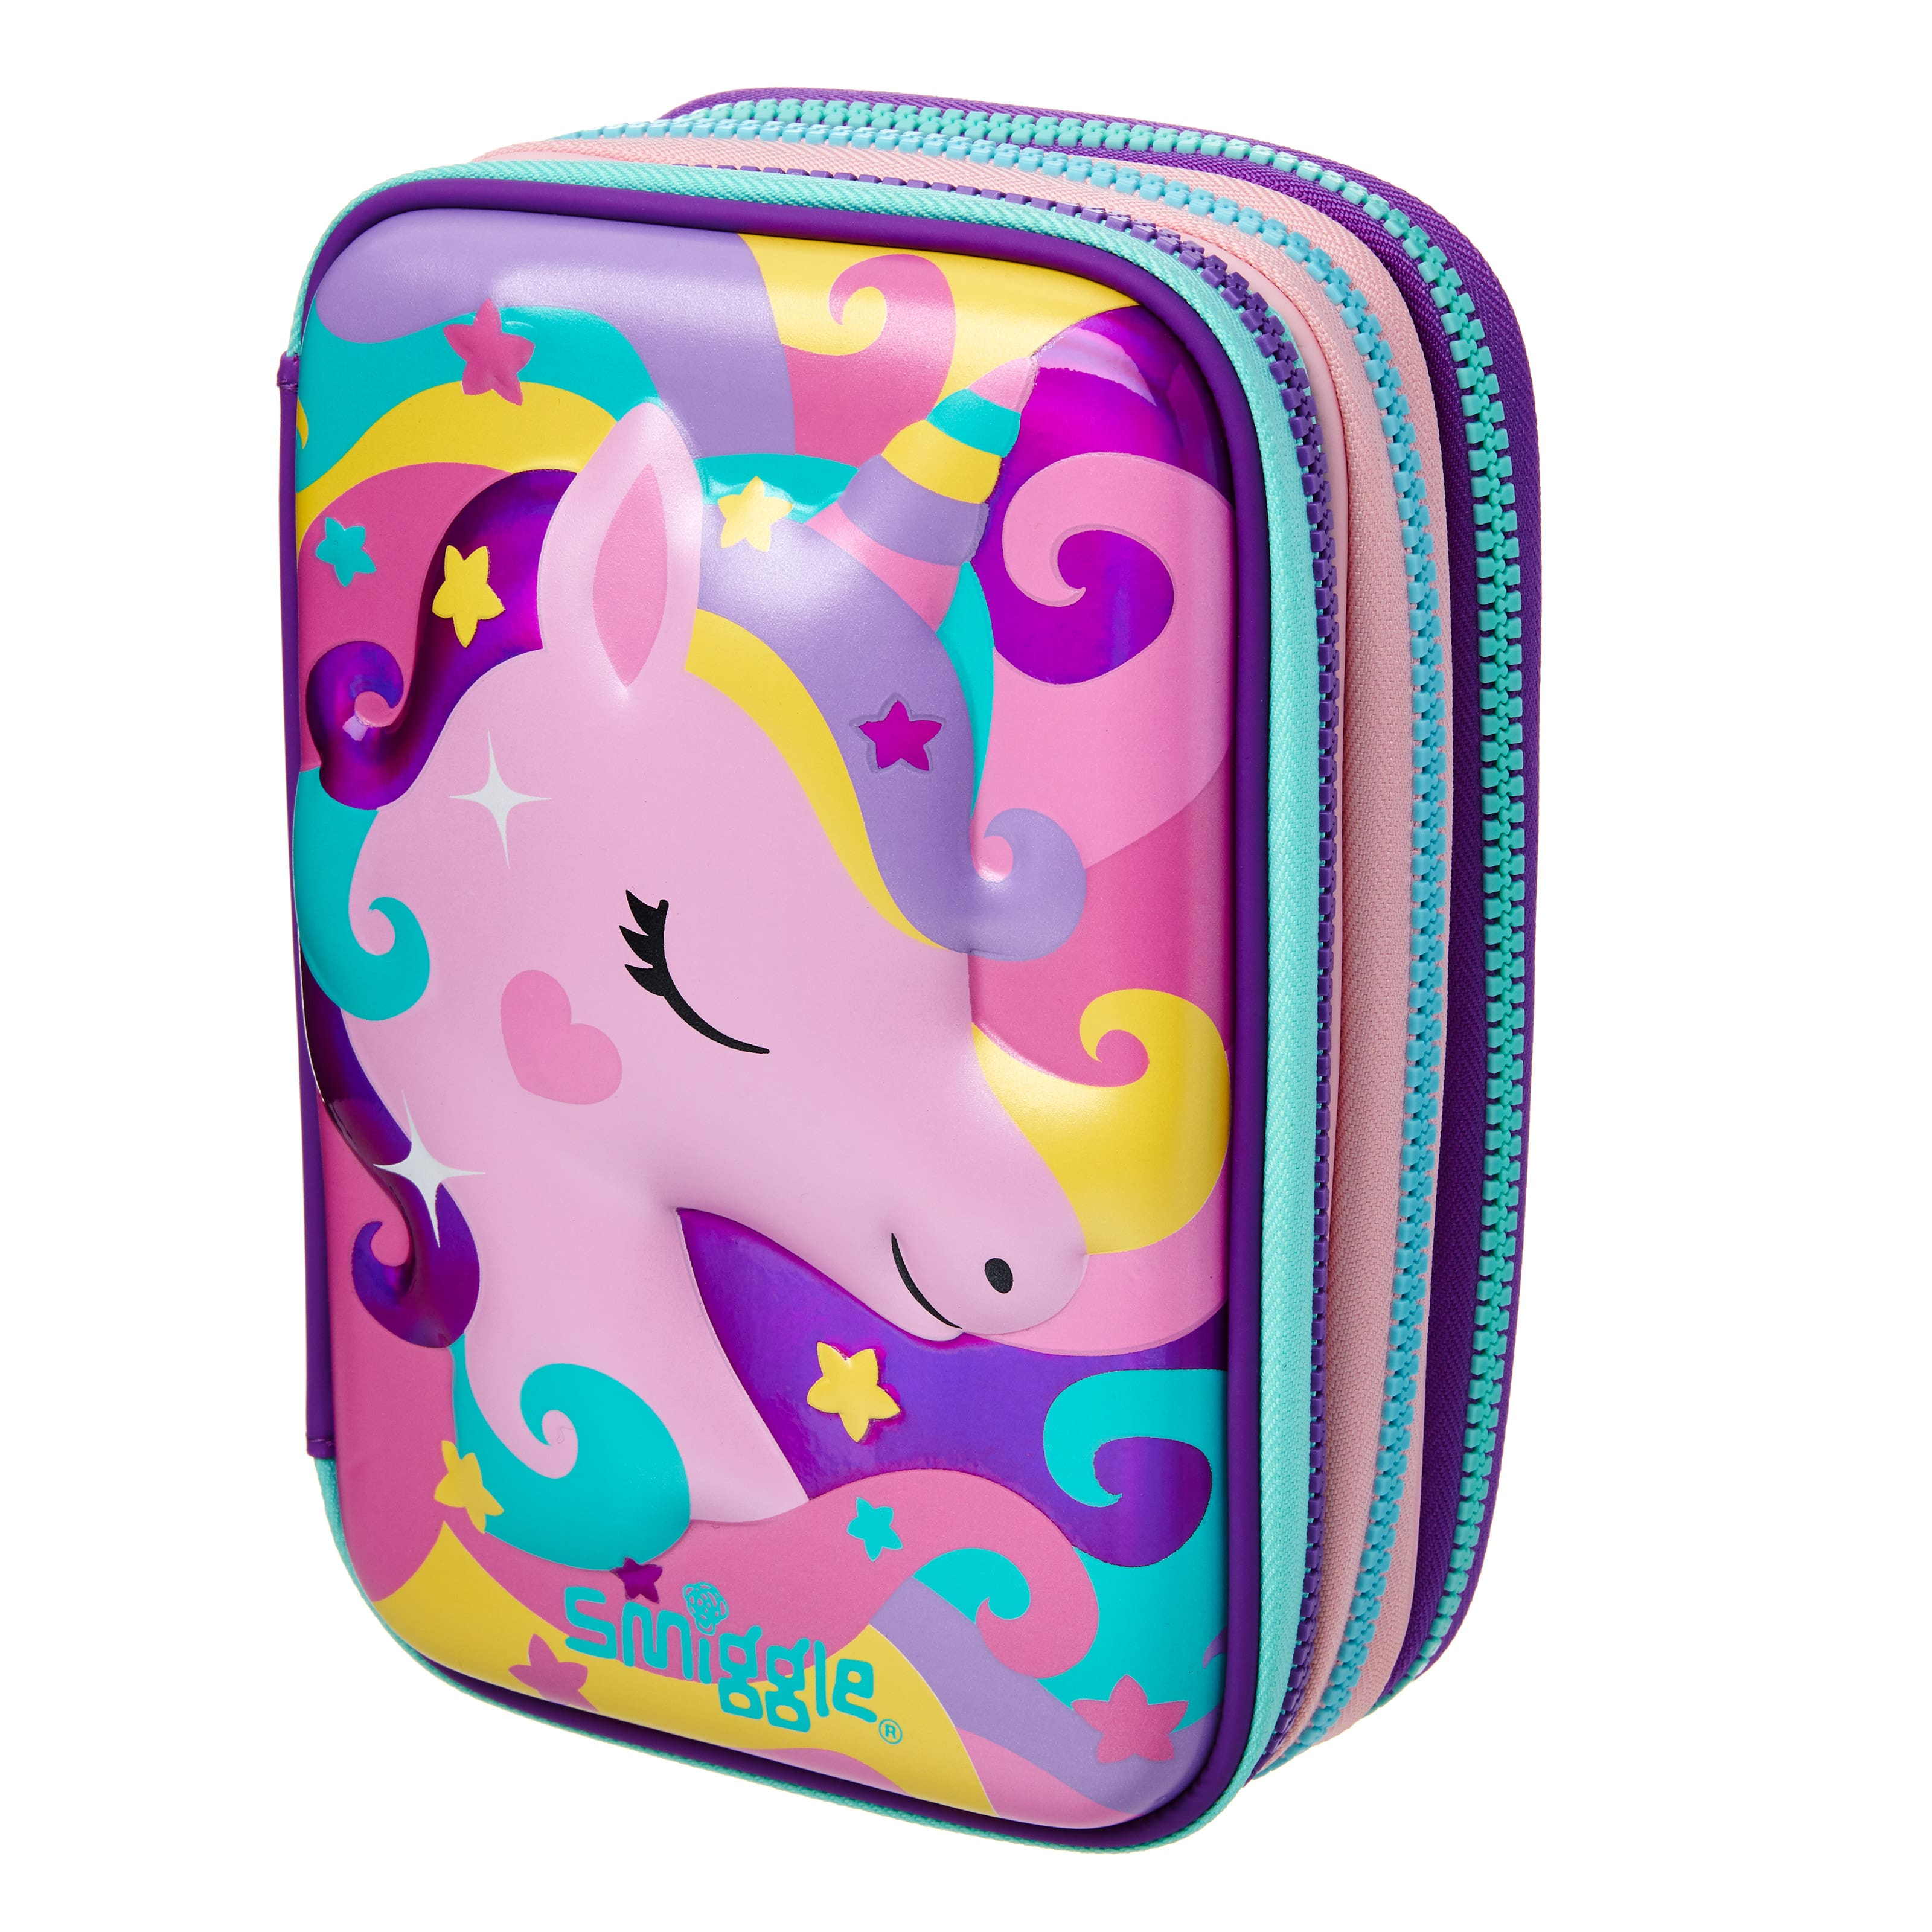 Welcome to Smiggle